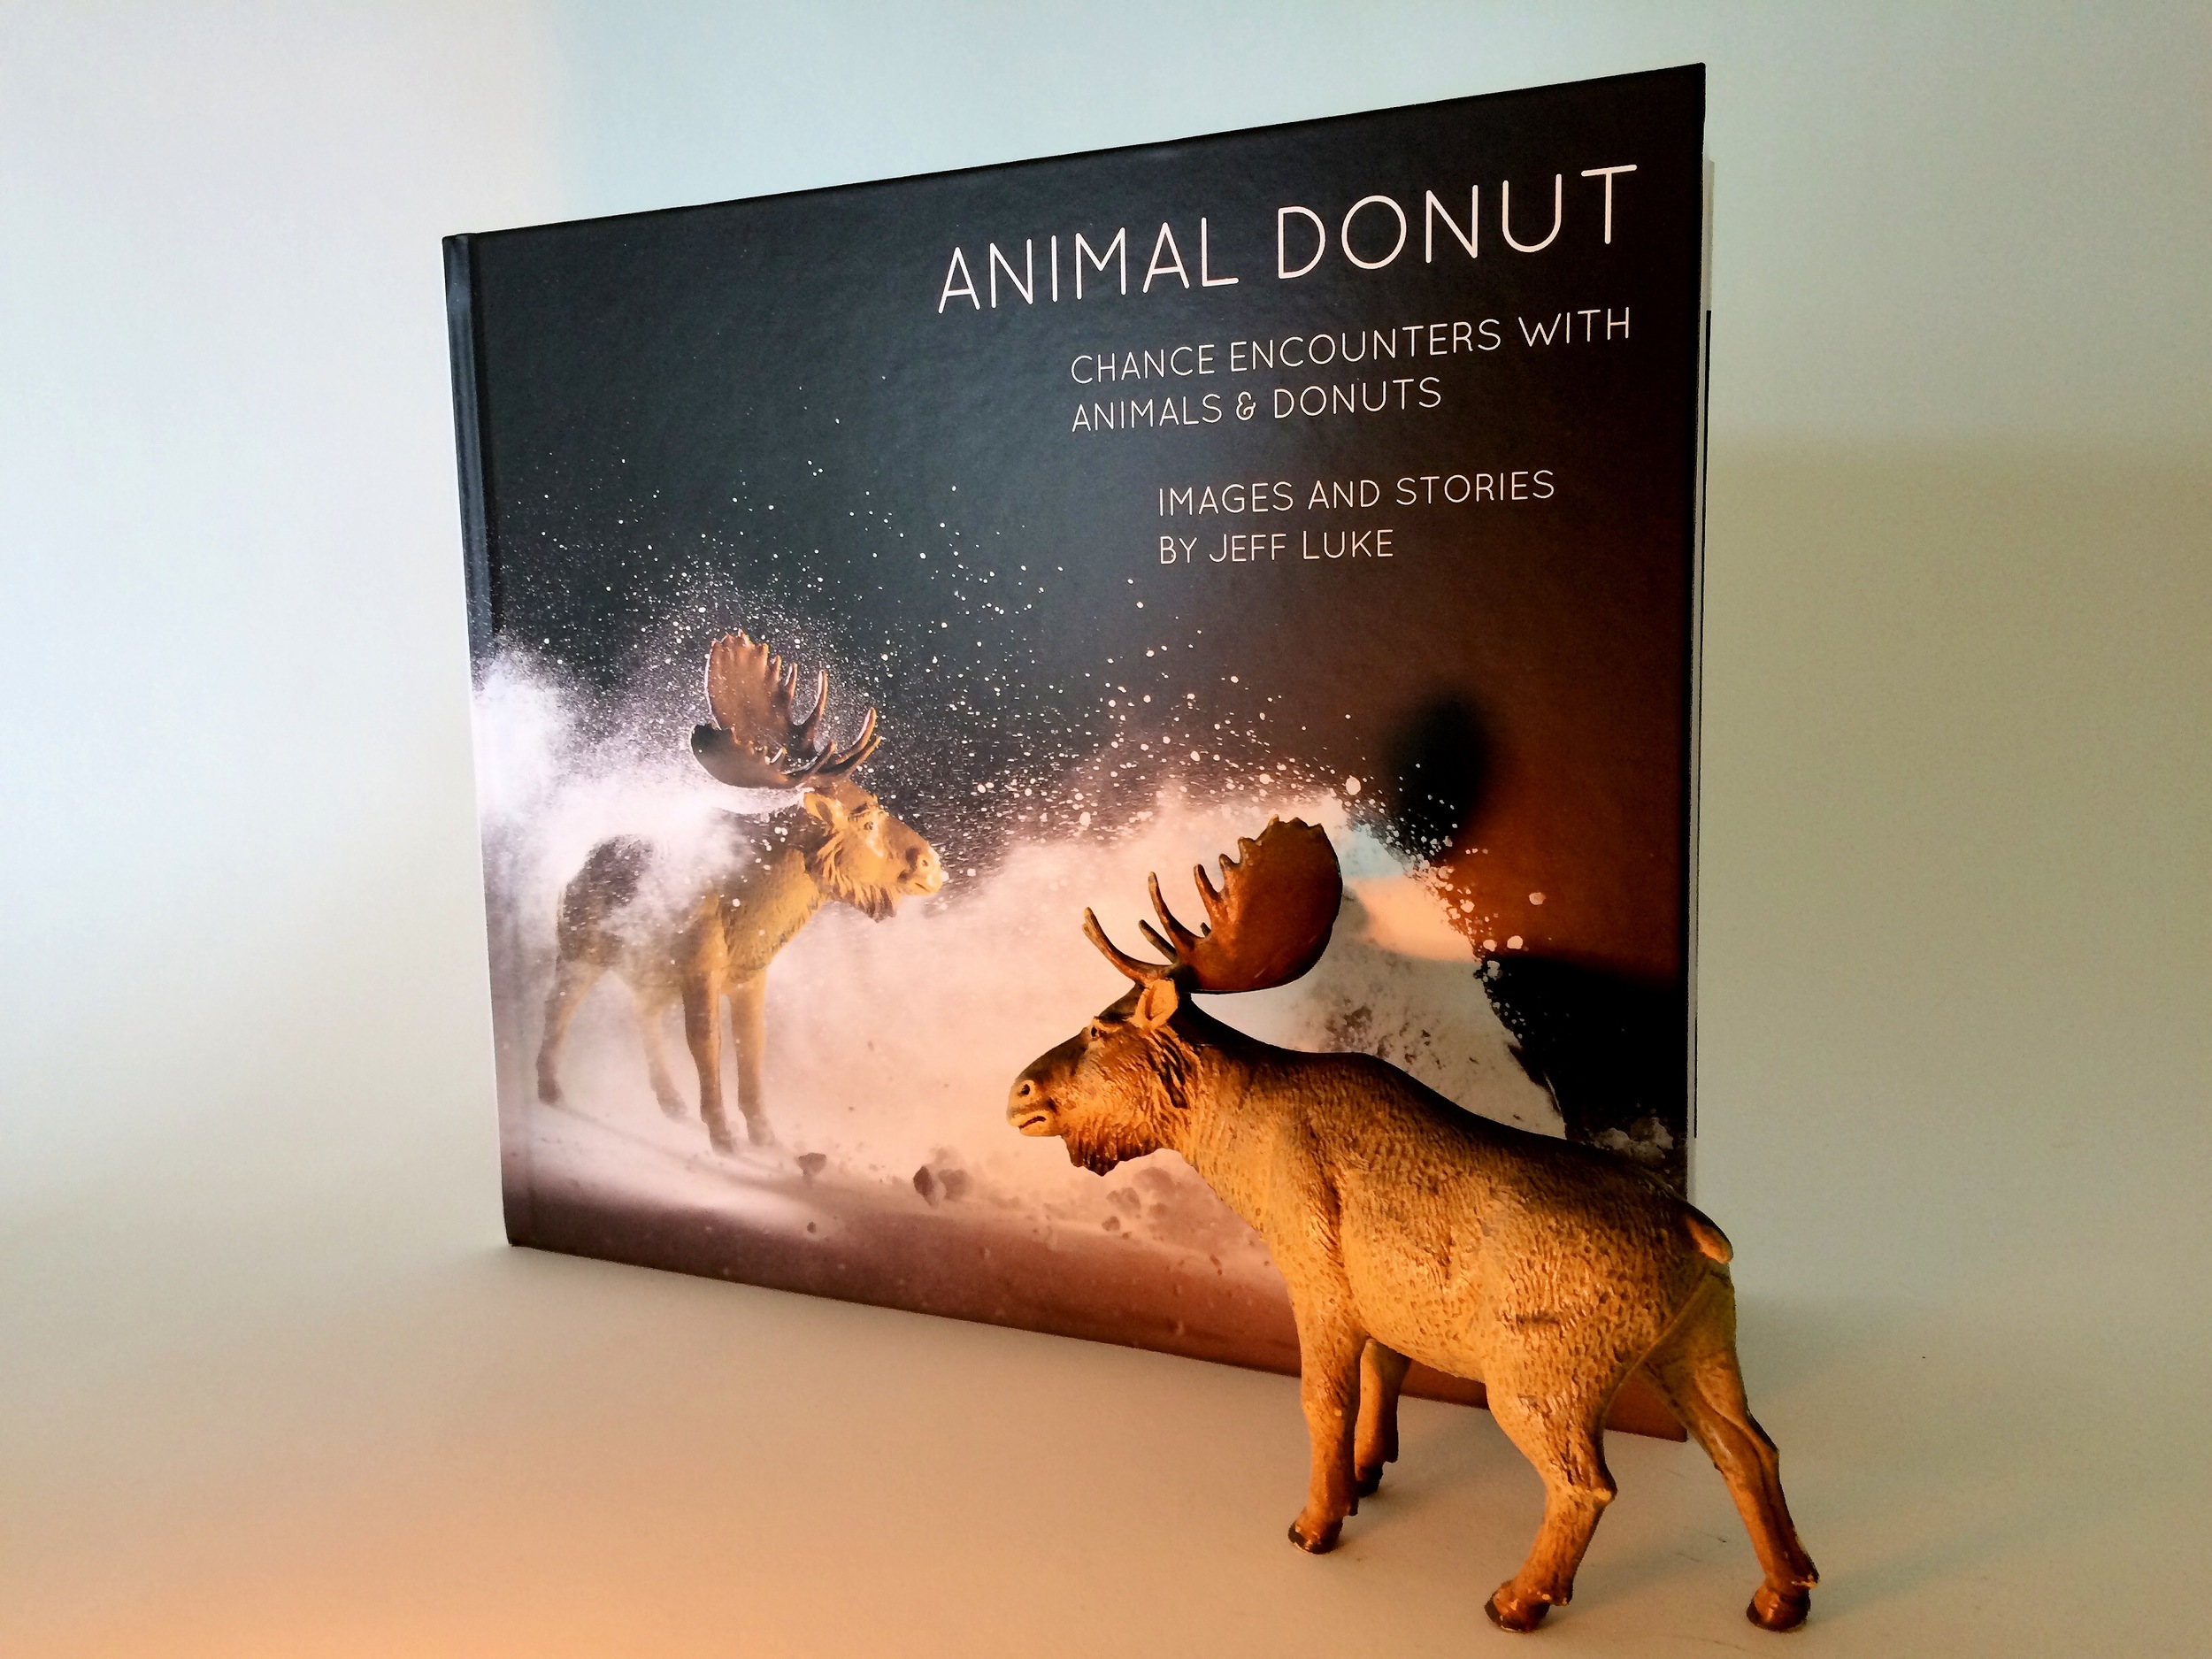 The brand new Animal Donut book has been printed, but for now there are only a few copies in existence. We will ramp up printing before long and the book will be available on Amazon soon.